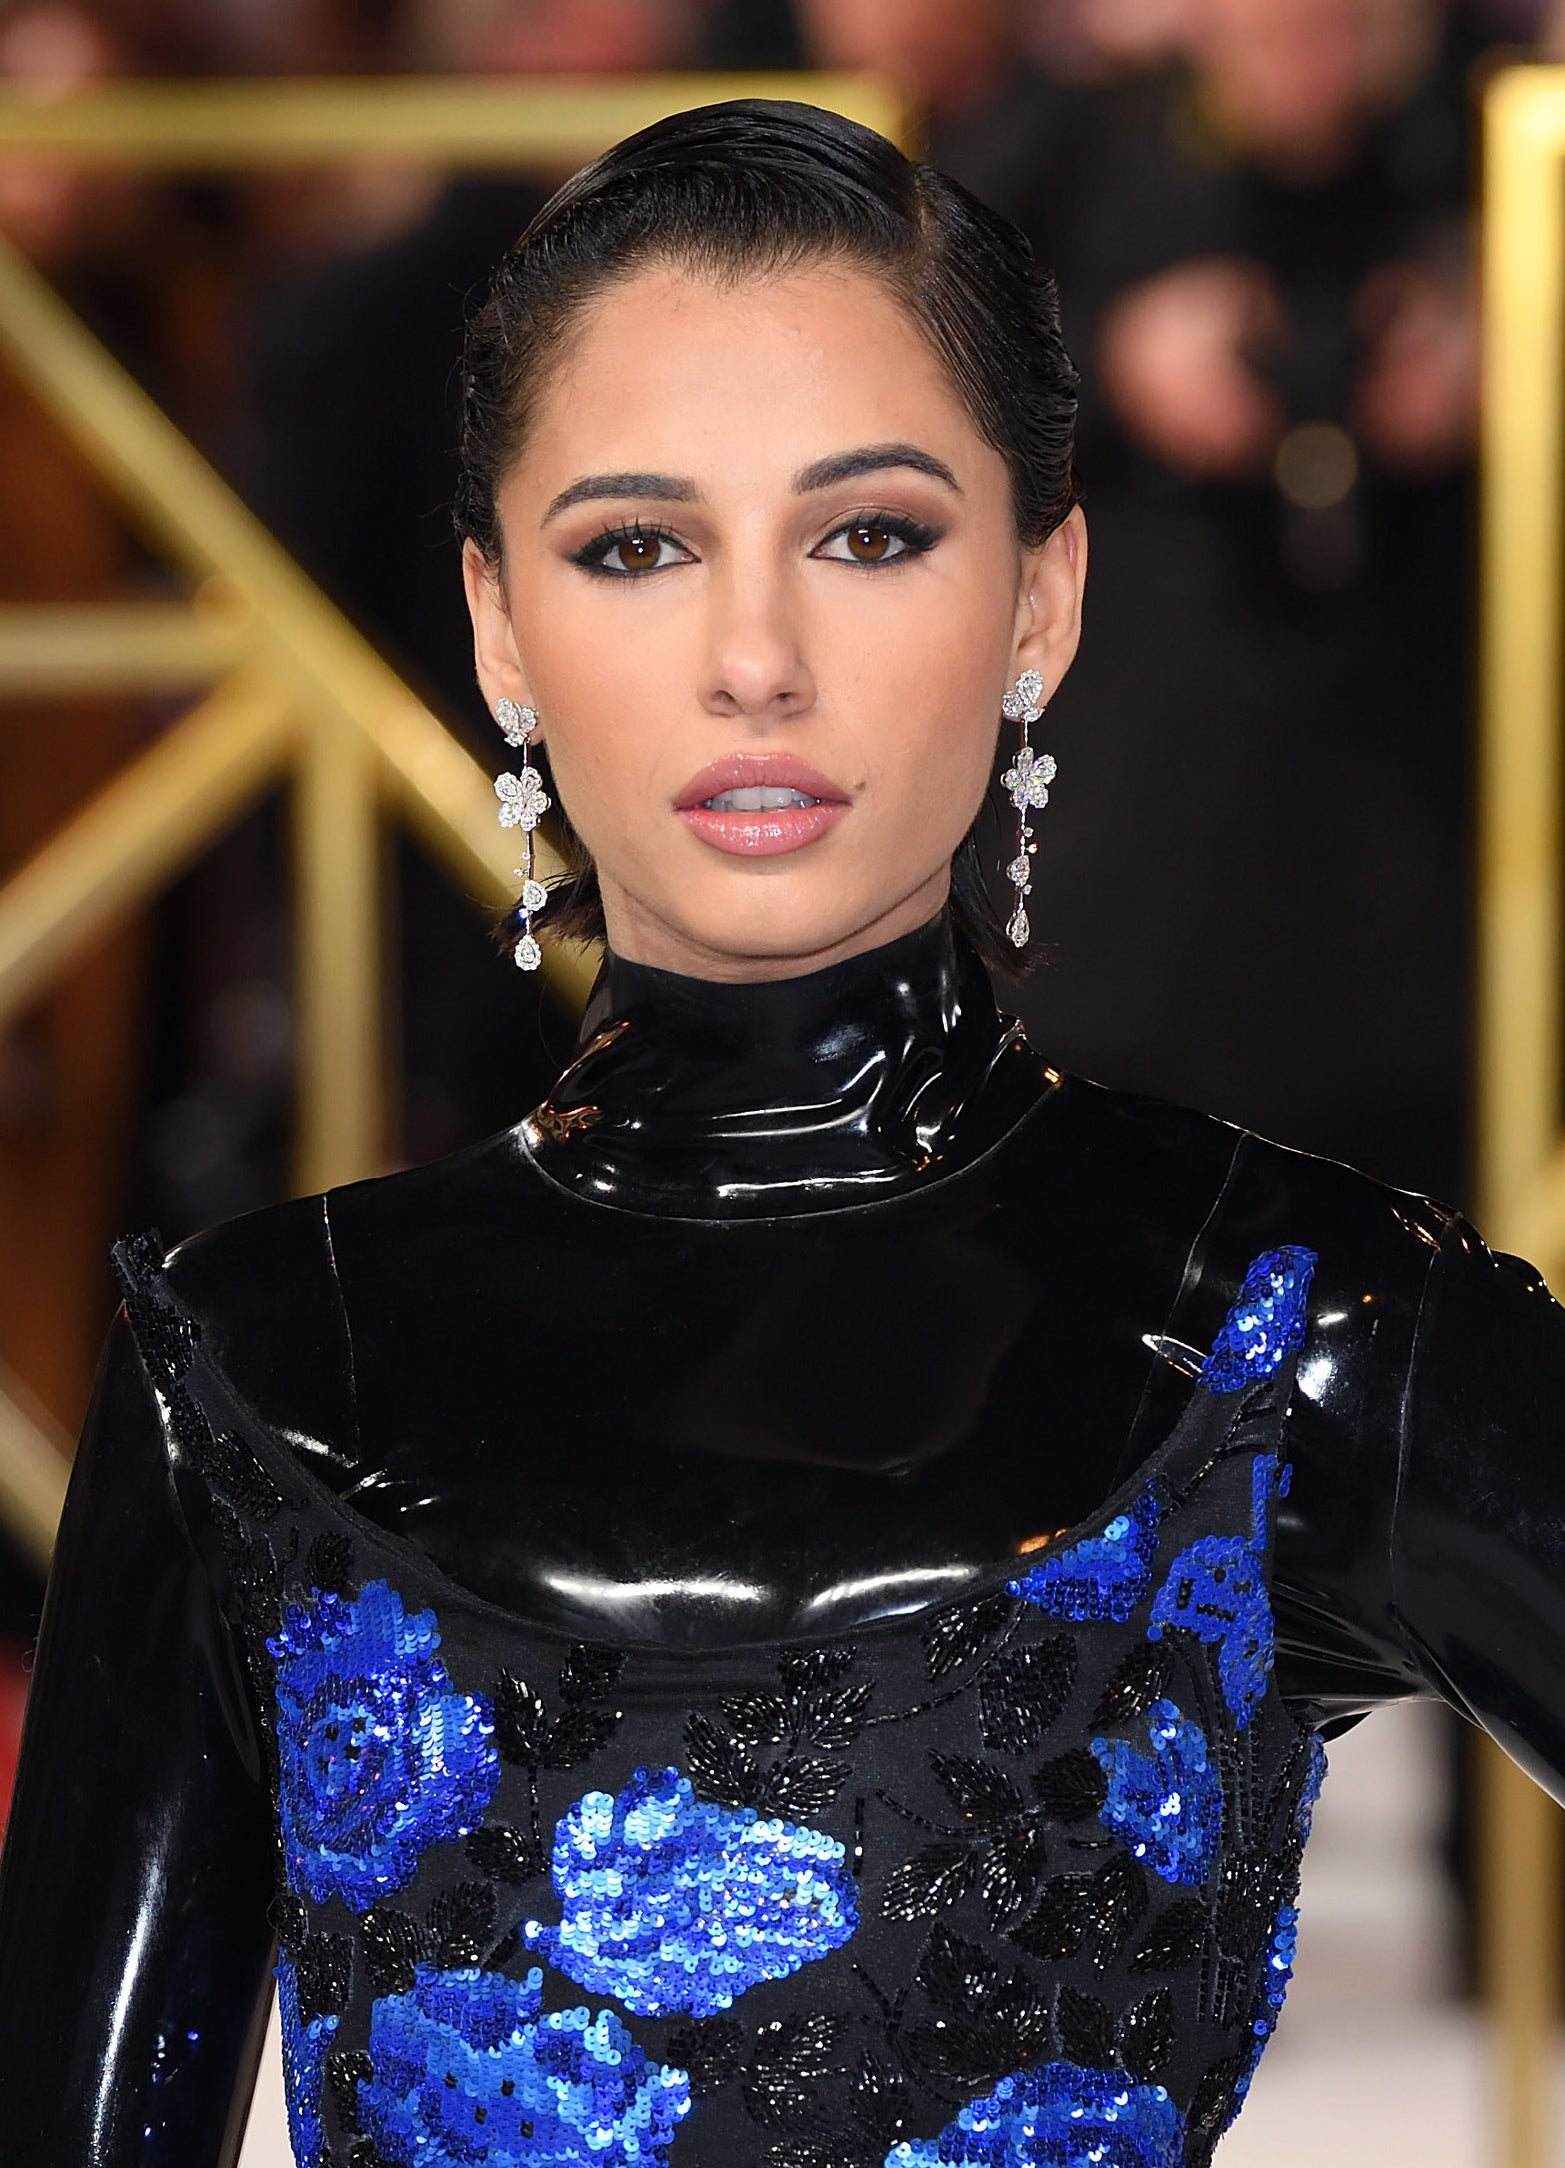 Naomi Scott looks into the camera at a Charlie's Angels event, wearing a latex black turtleneck and sequenced blue and black dress